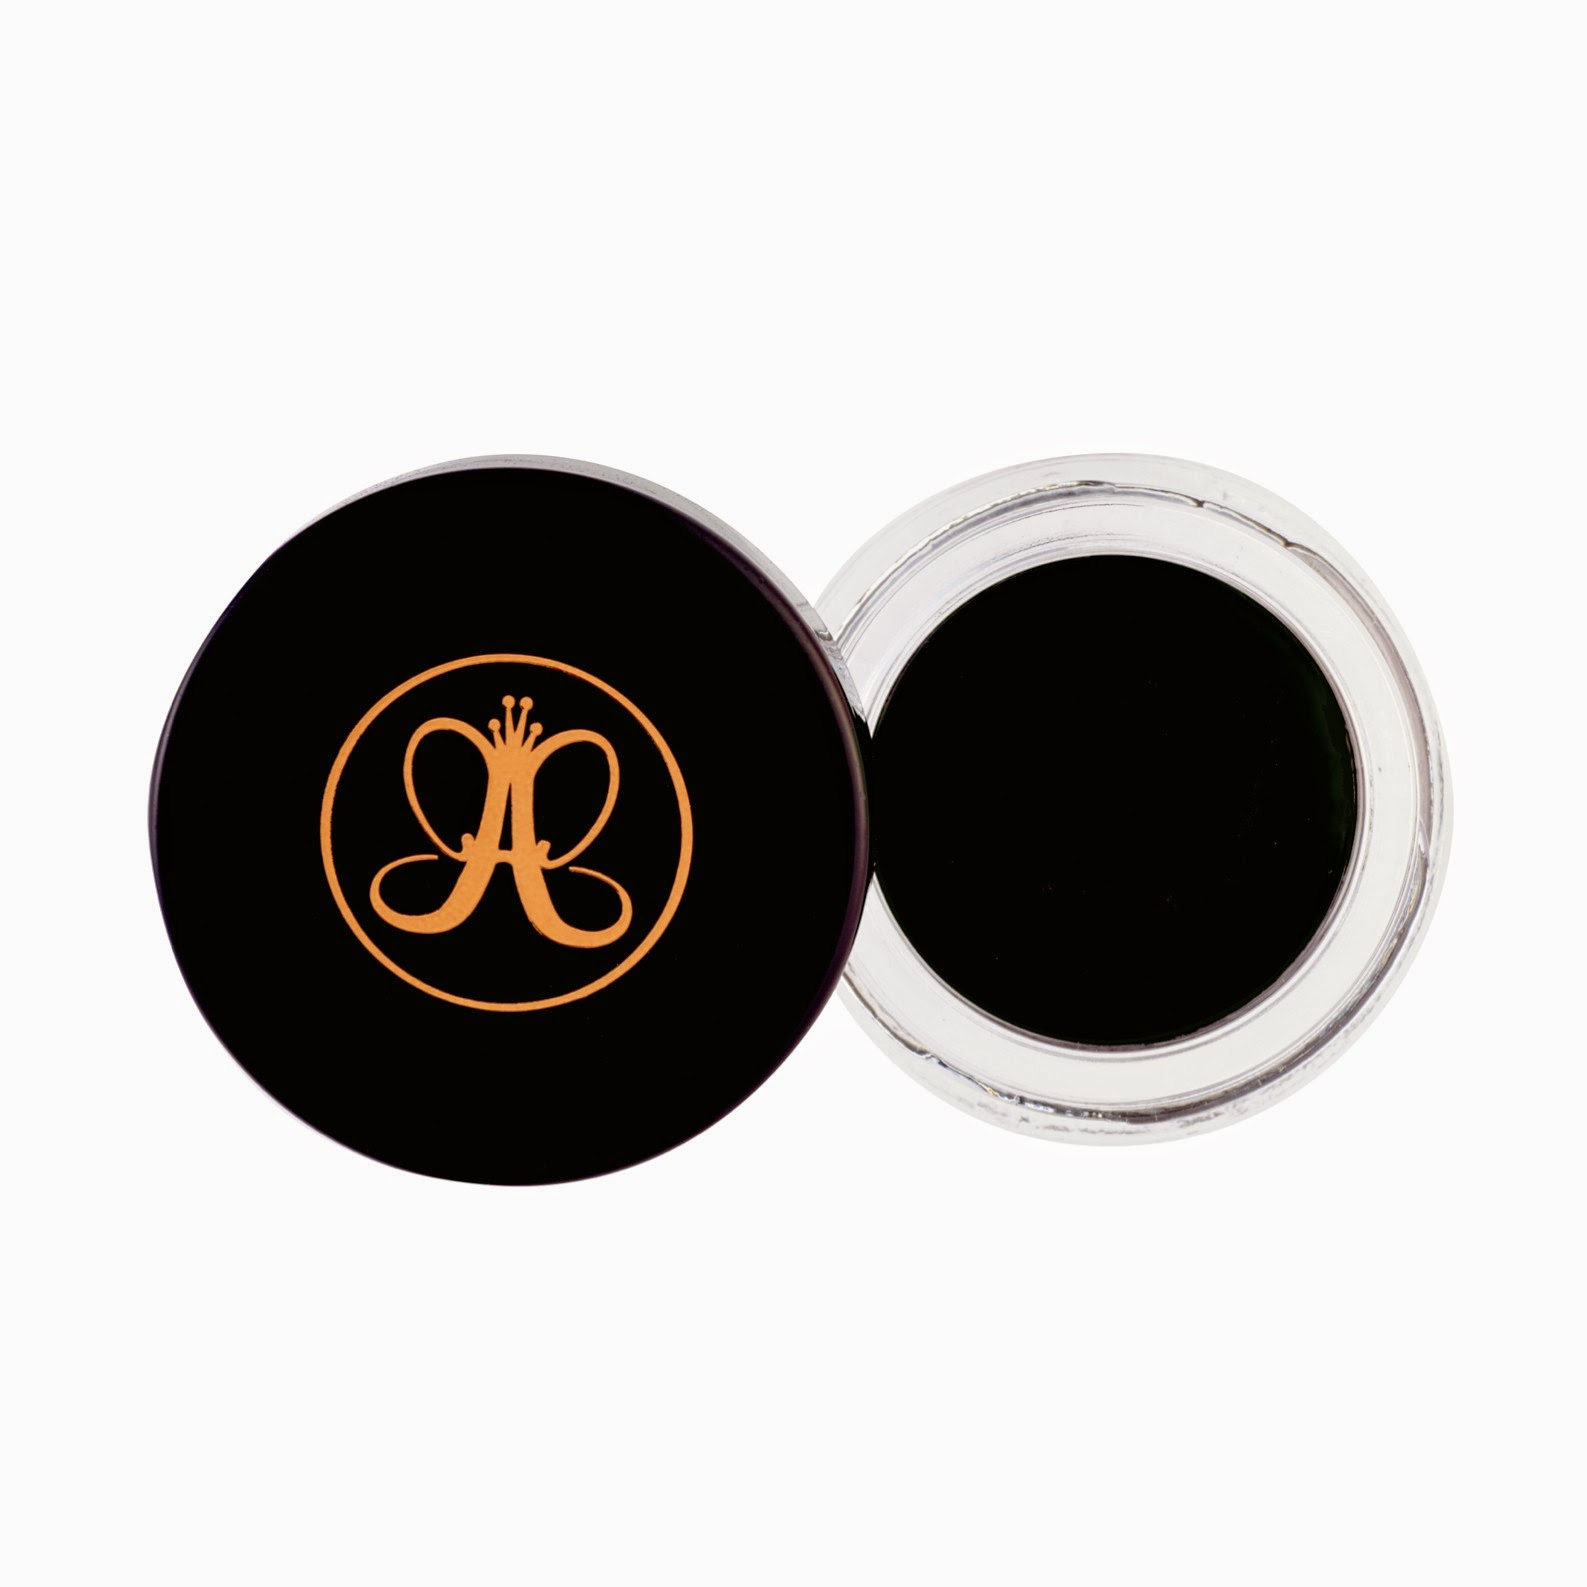 Anastasia Beverly Hills Waterproof Creme Color Jet